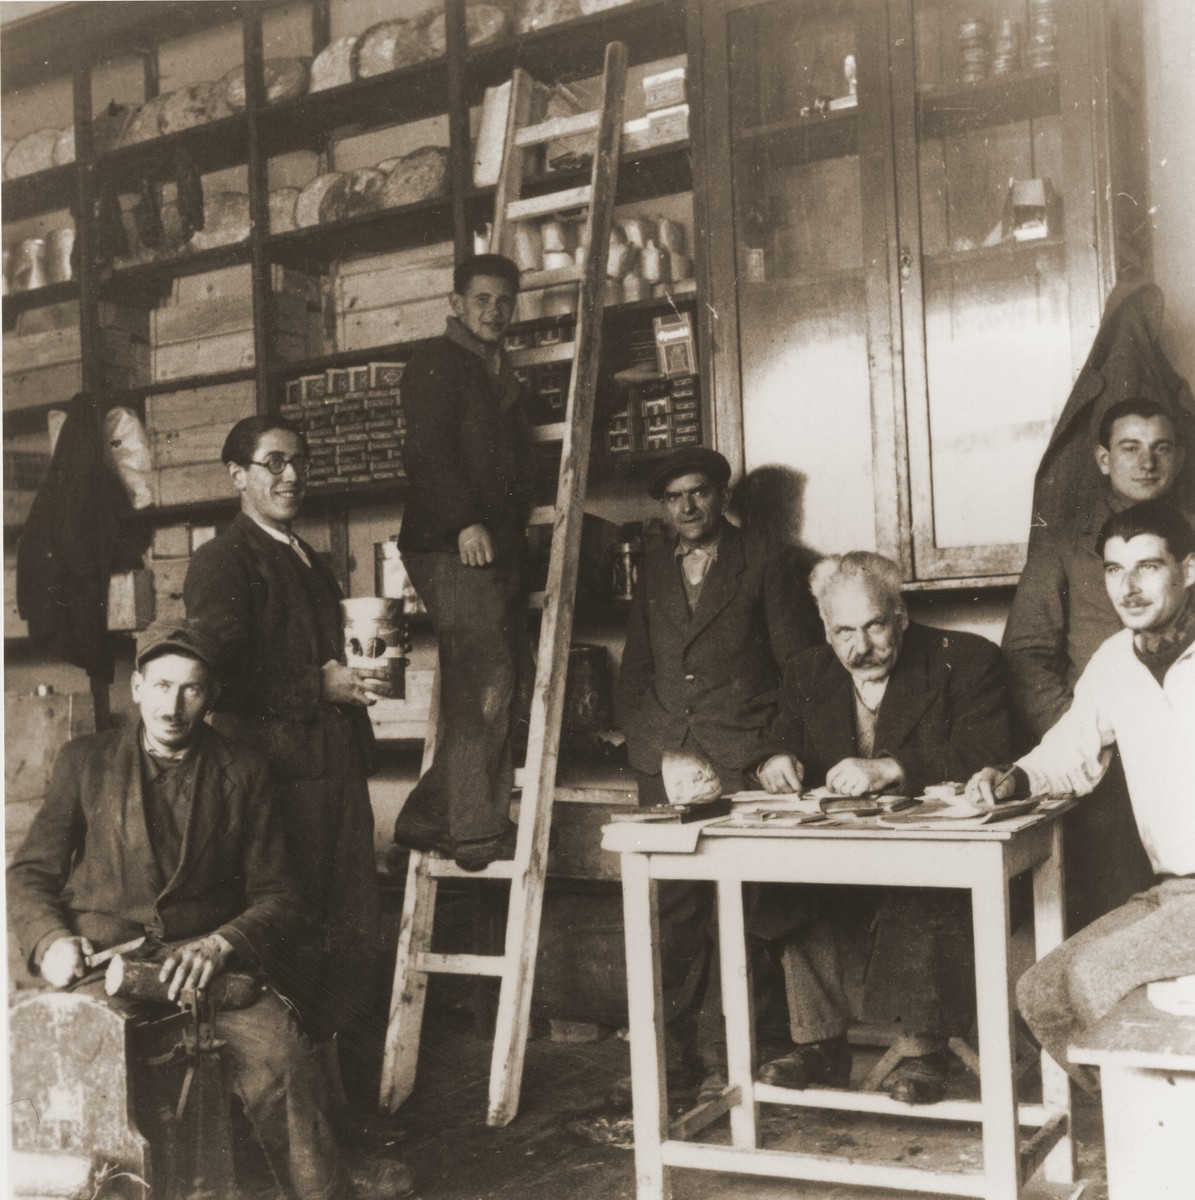 Jewish refugees from the Kladovo transport in a food storeroom at the Sabac refugee camp.